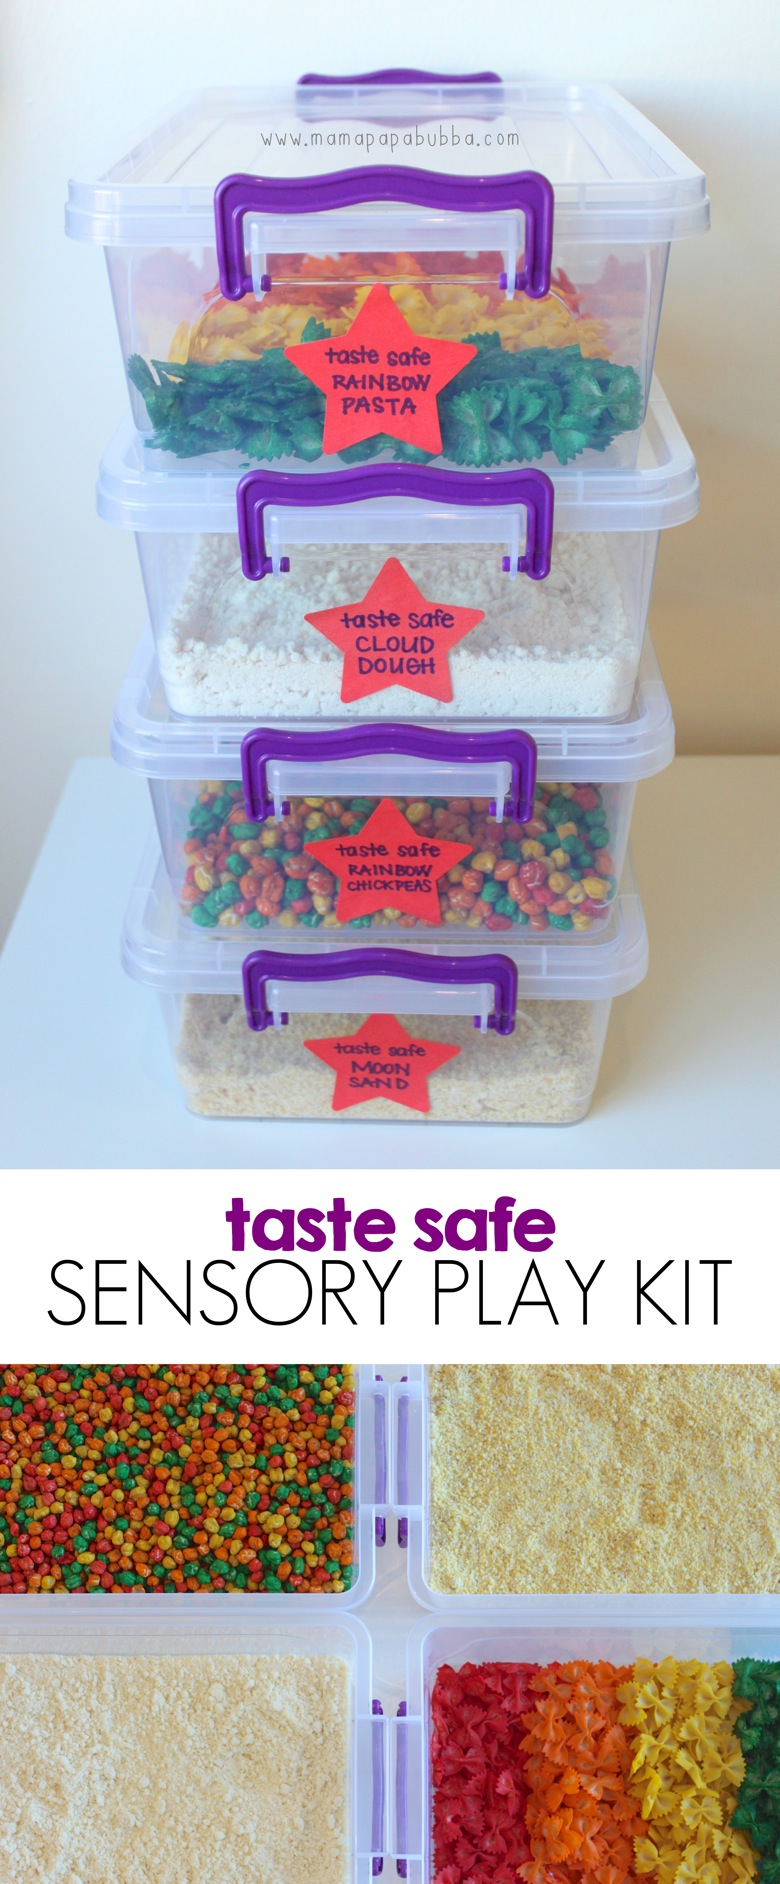 Taste Safe Sensory Play Kit | Mama Papa Bubba